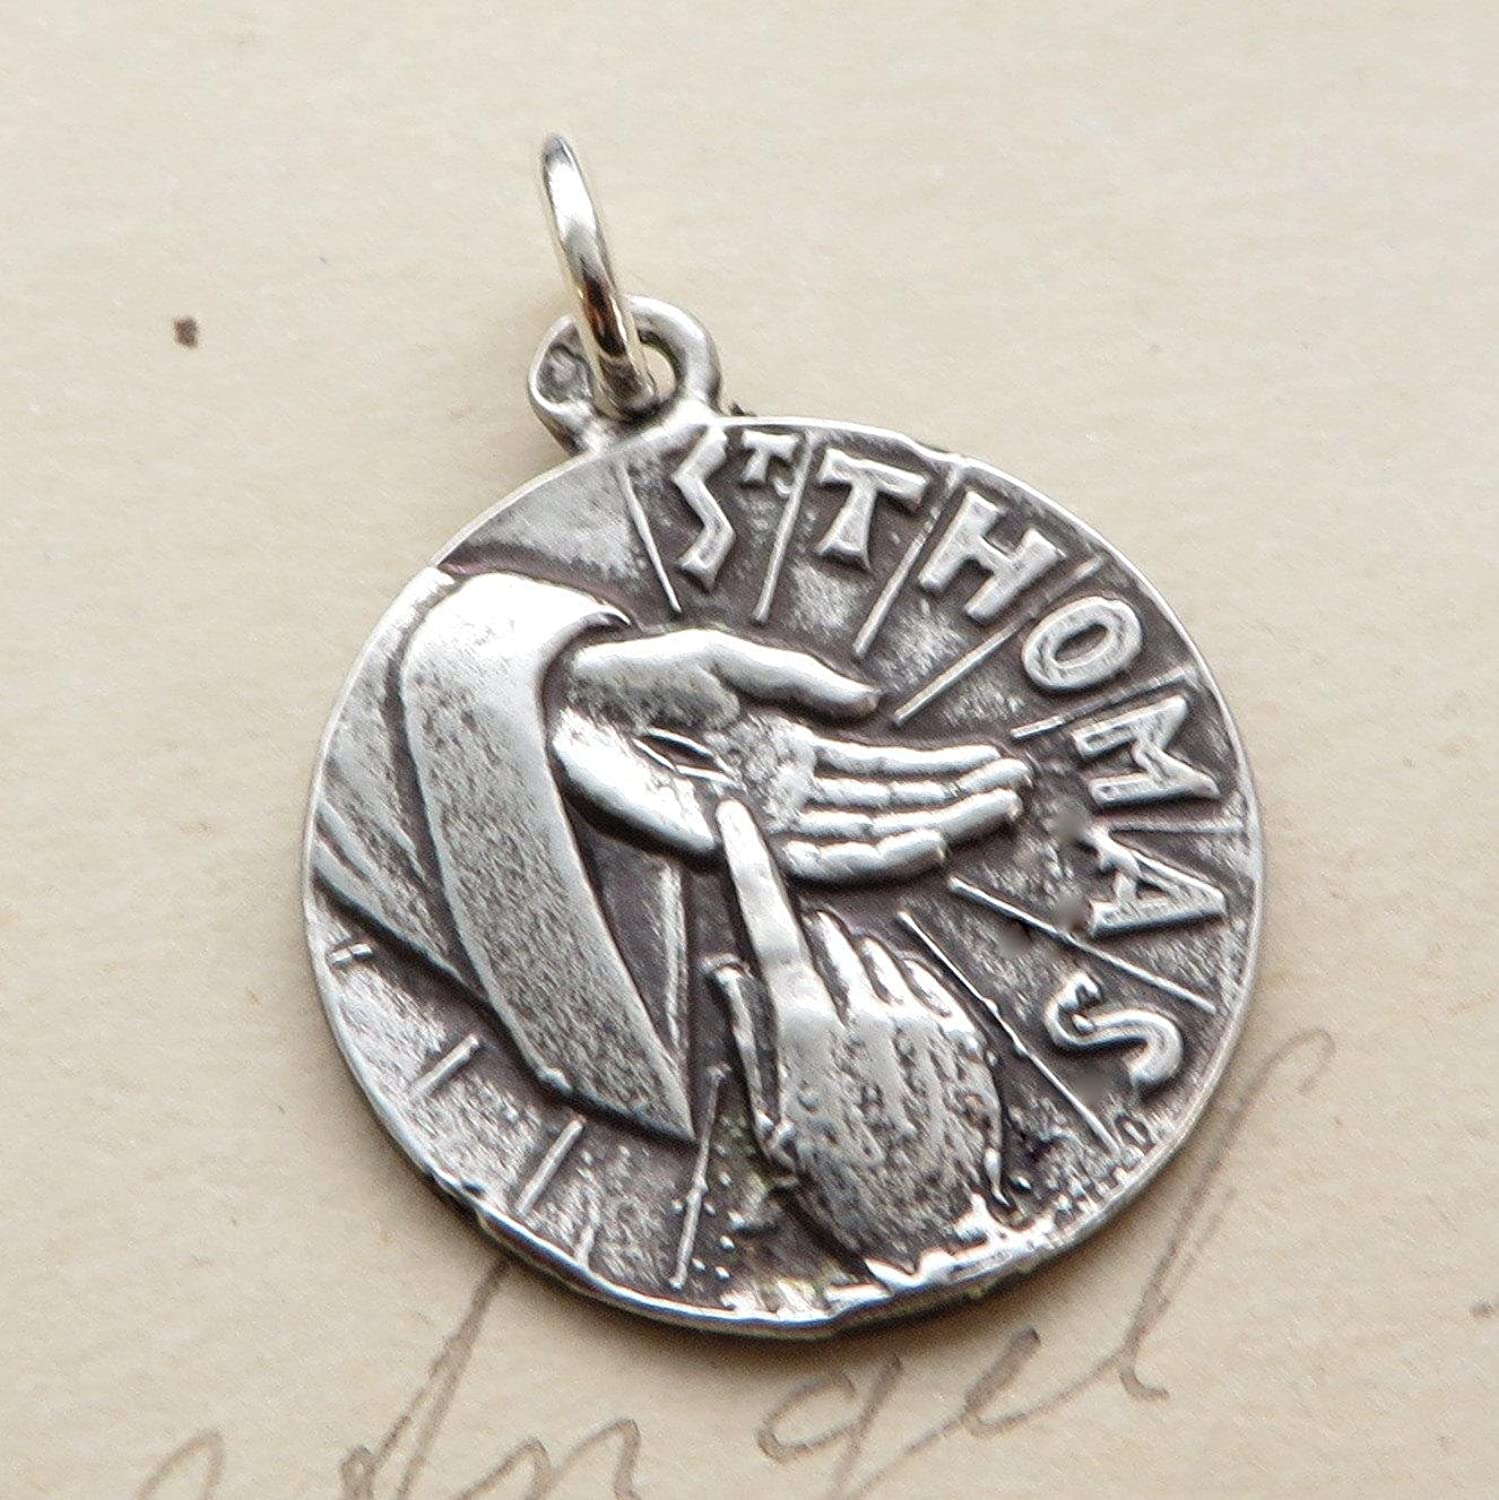 site item store tap catholic st michael the military vet mn medallion veterans